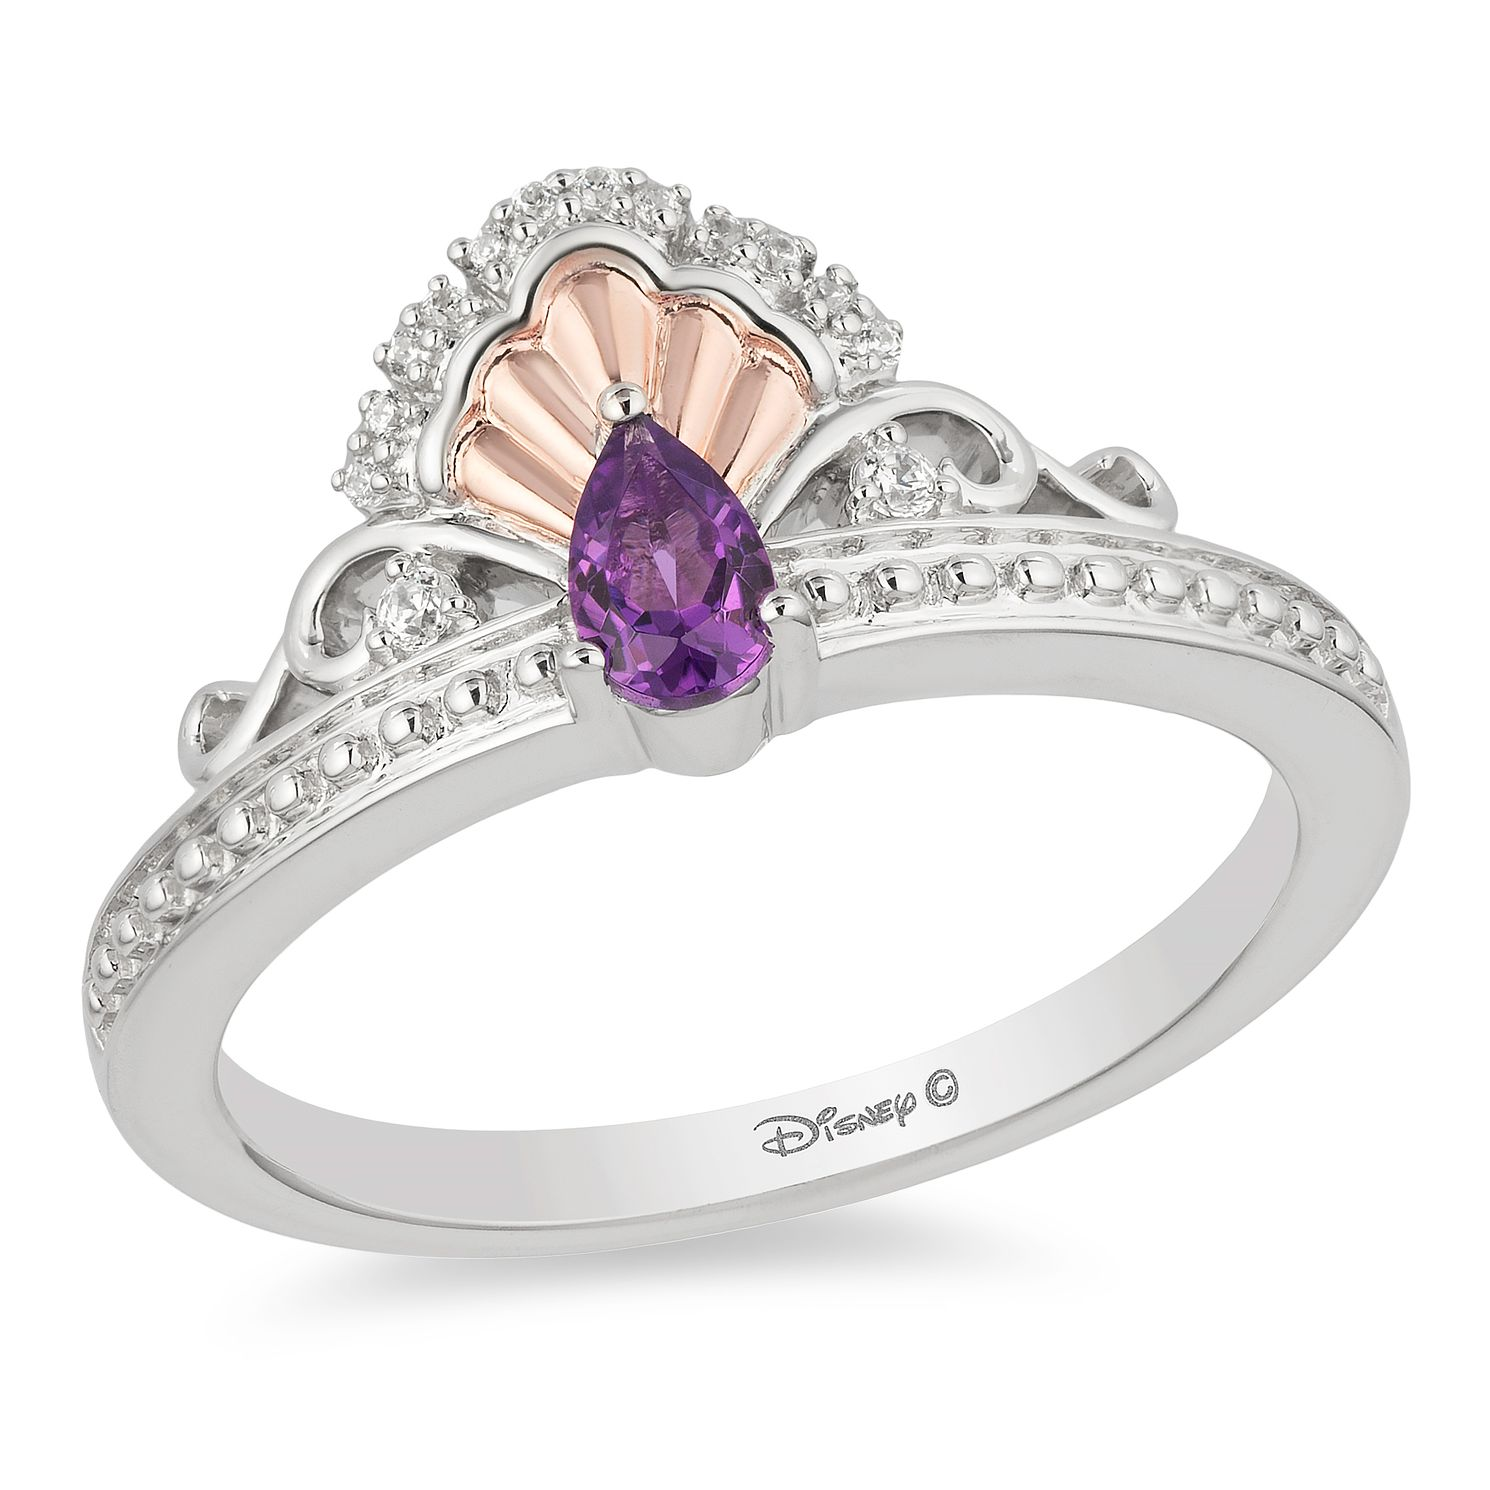 Enchanted Disney Fine Jewelry Amethyst & Diamond Ariel Ring - Product number 5081424